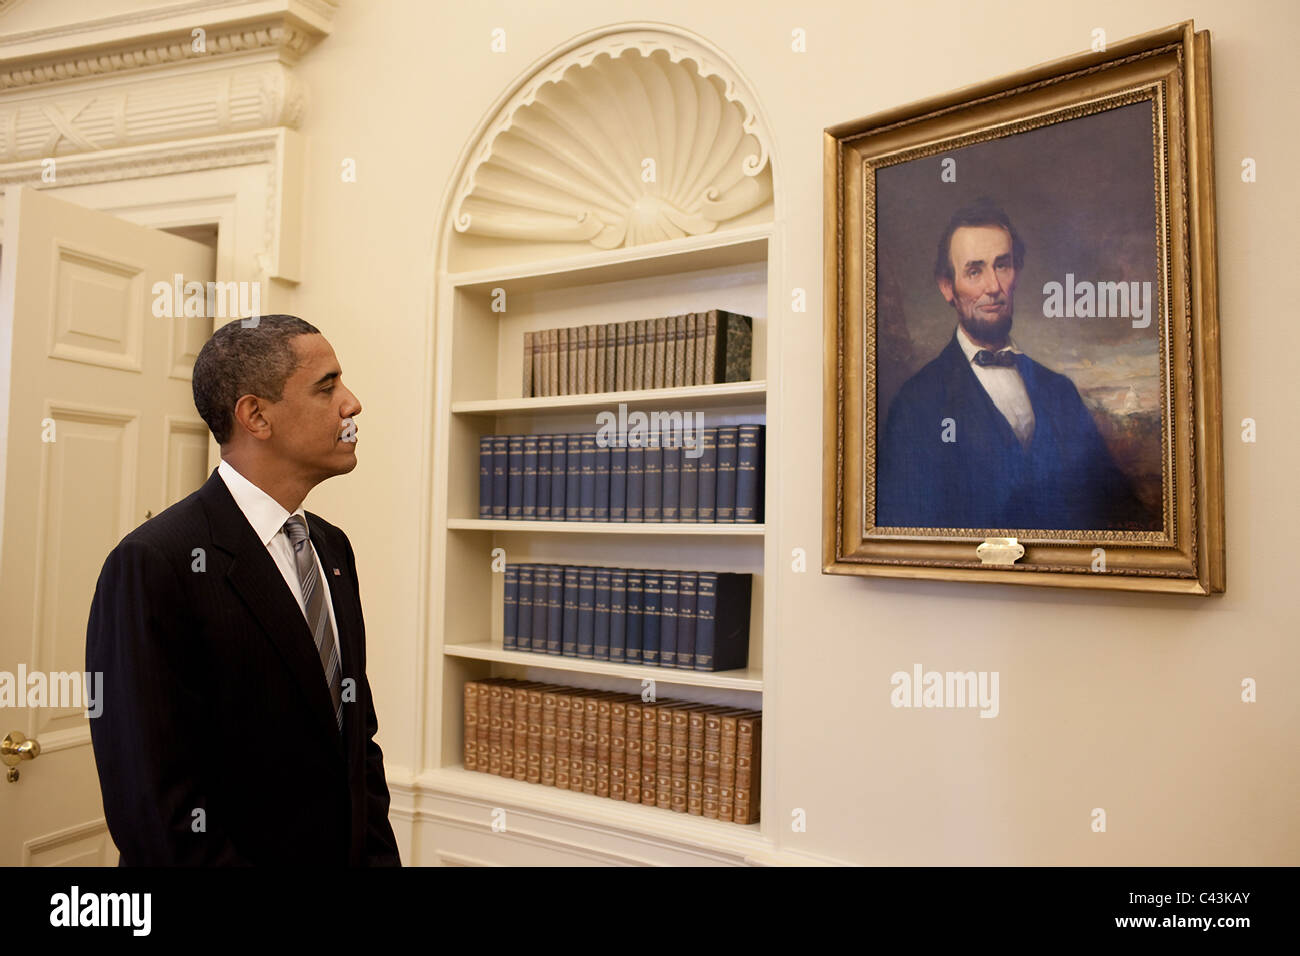 president barack obama looks at the portrait of abraham lincoln that hangs in the oval office barack obama oval office